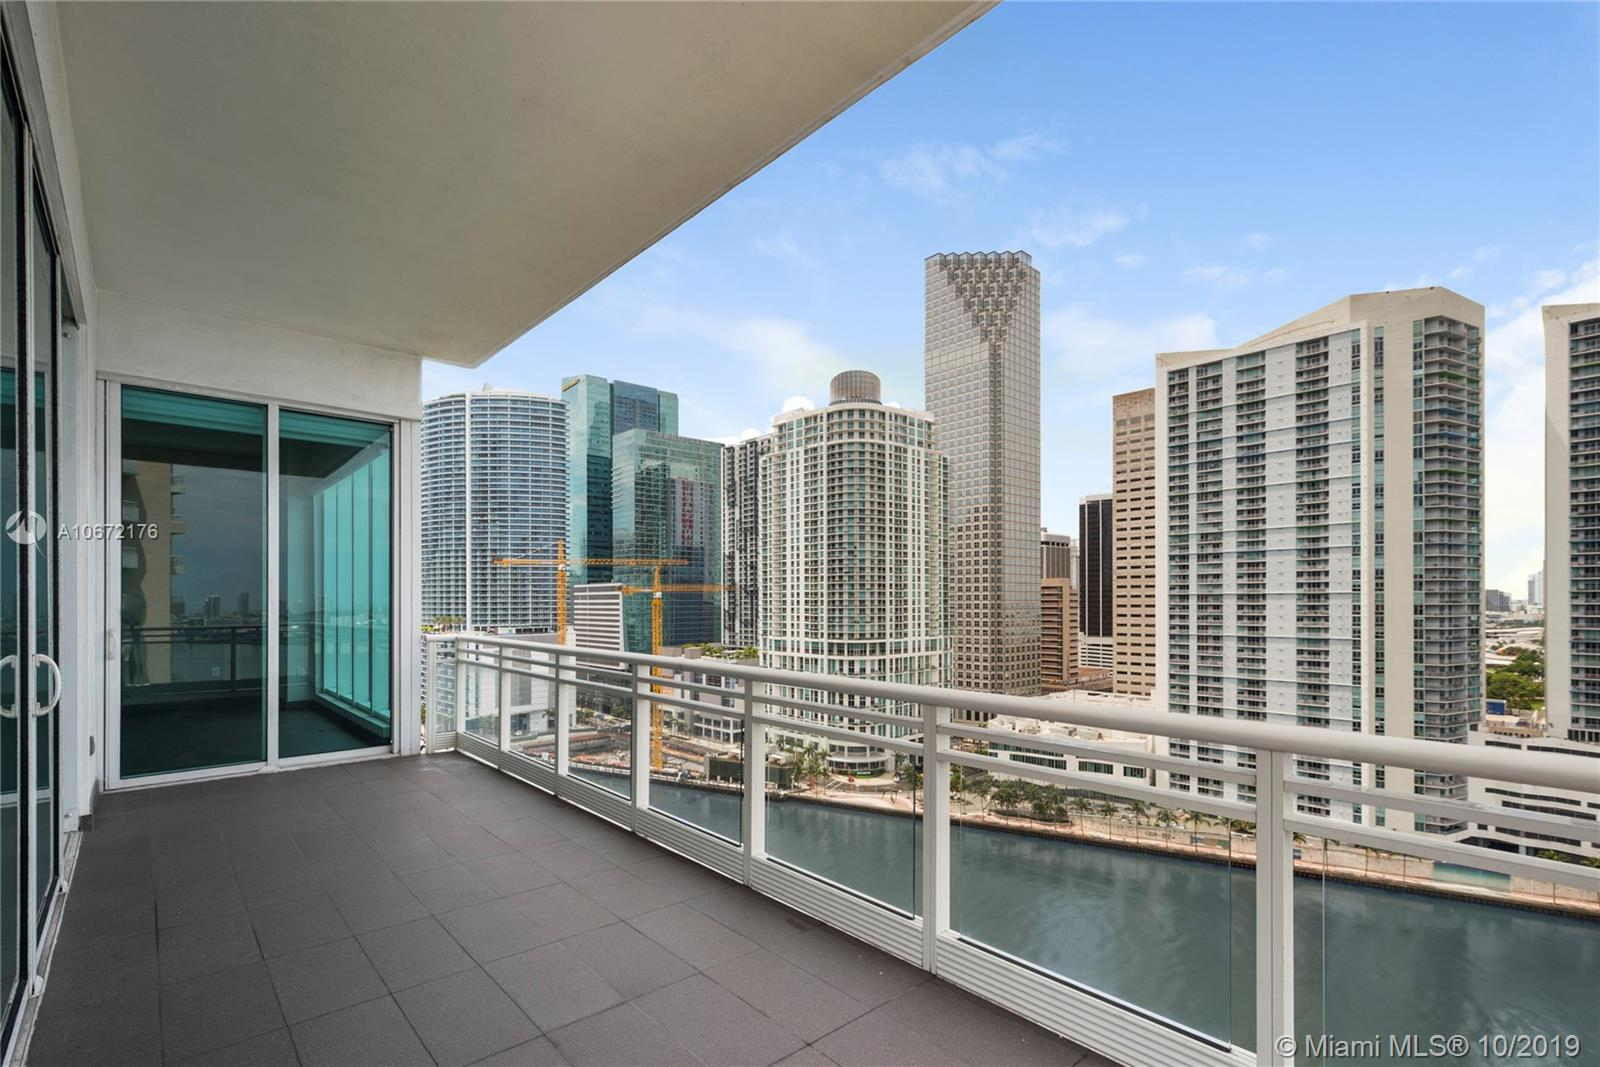 900 Brickell key blvd.-1803 miami-fl-33131-a10672176-Pic05